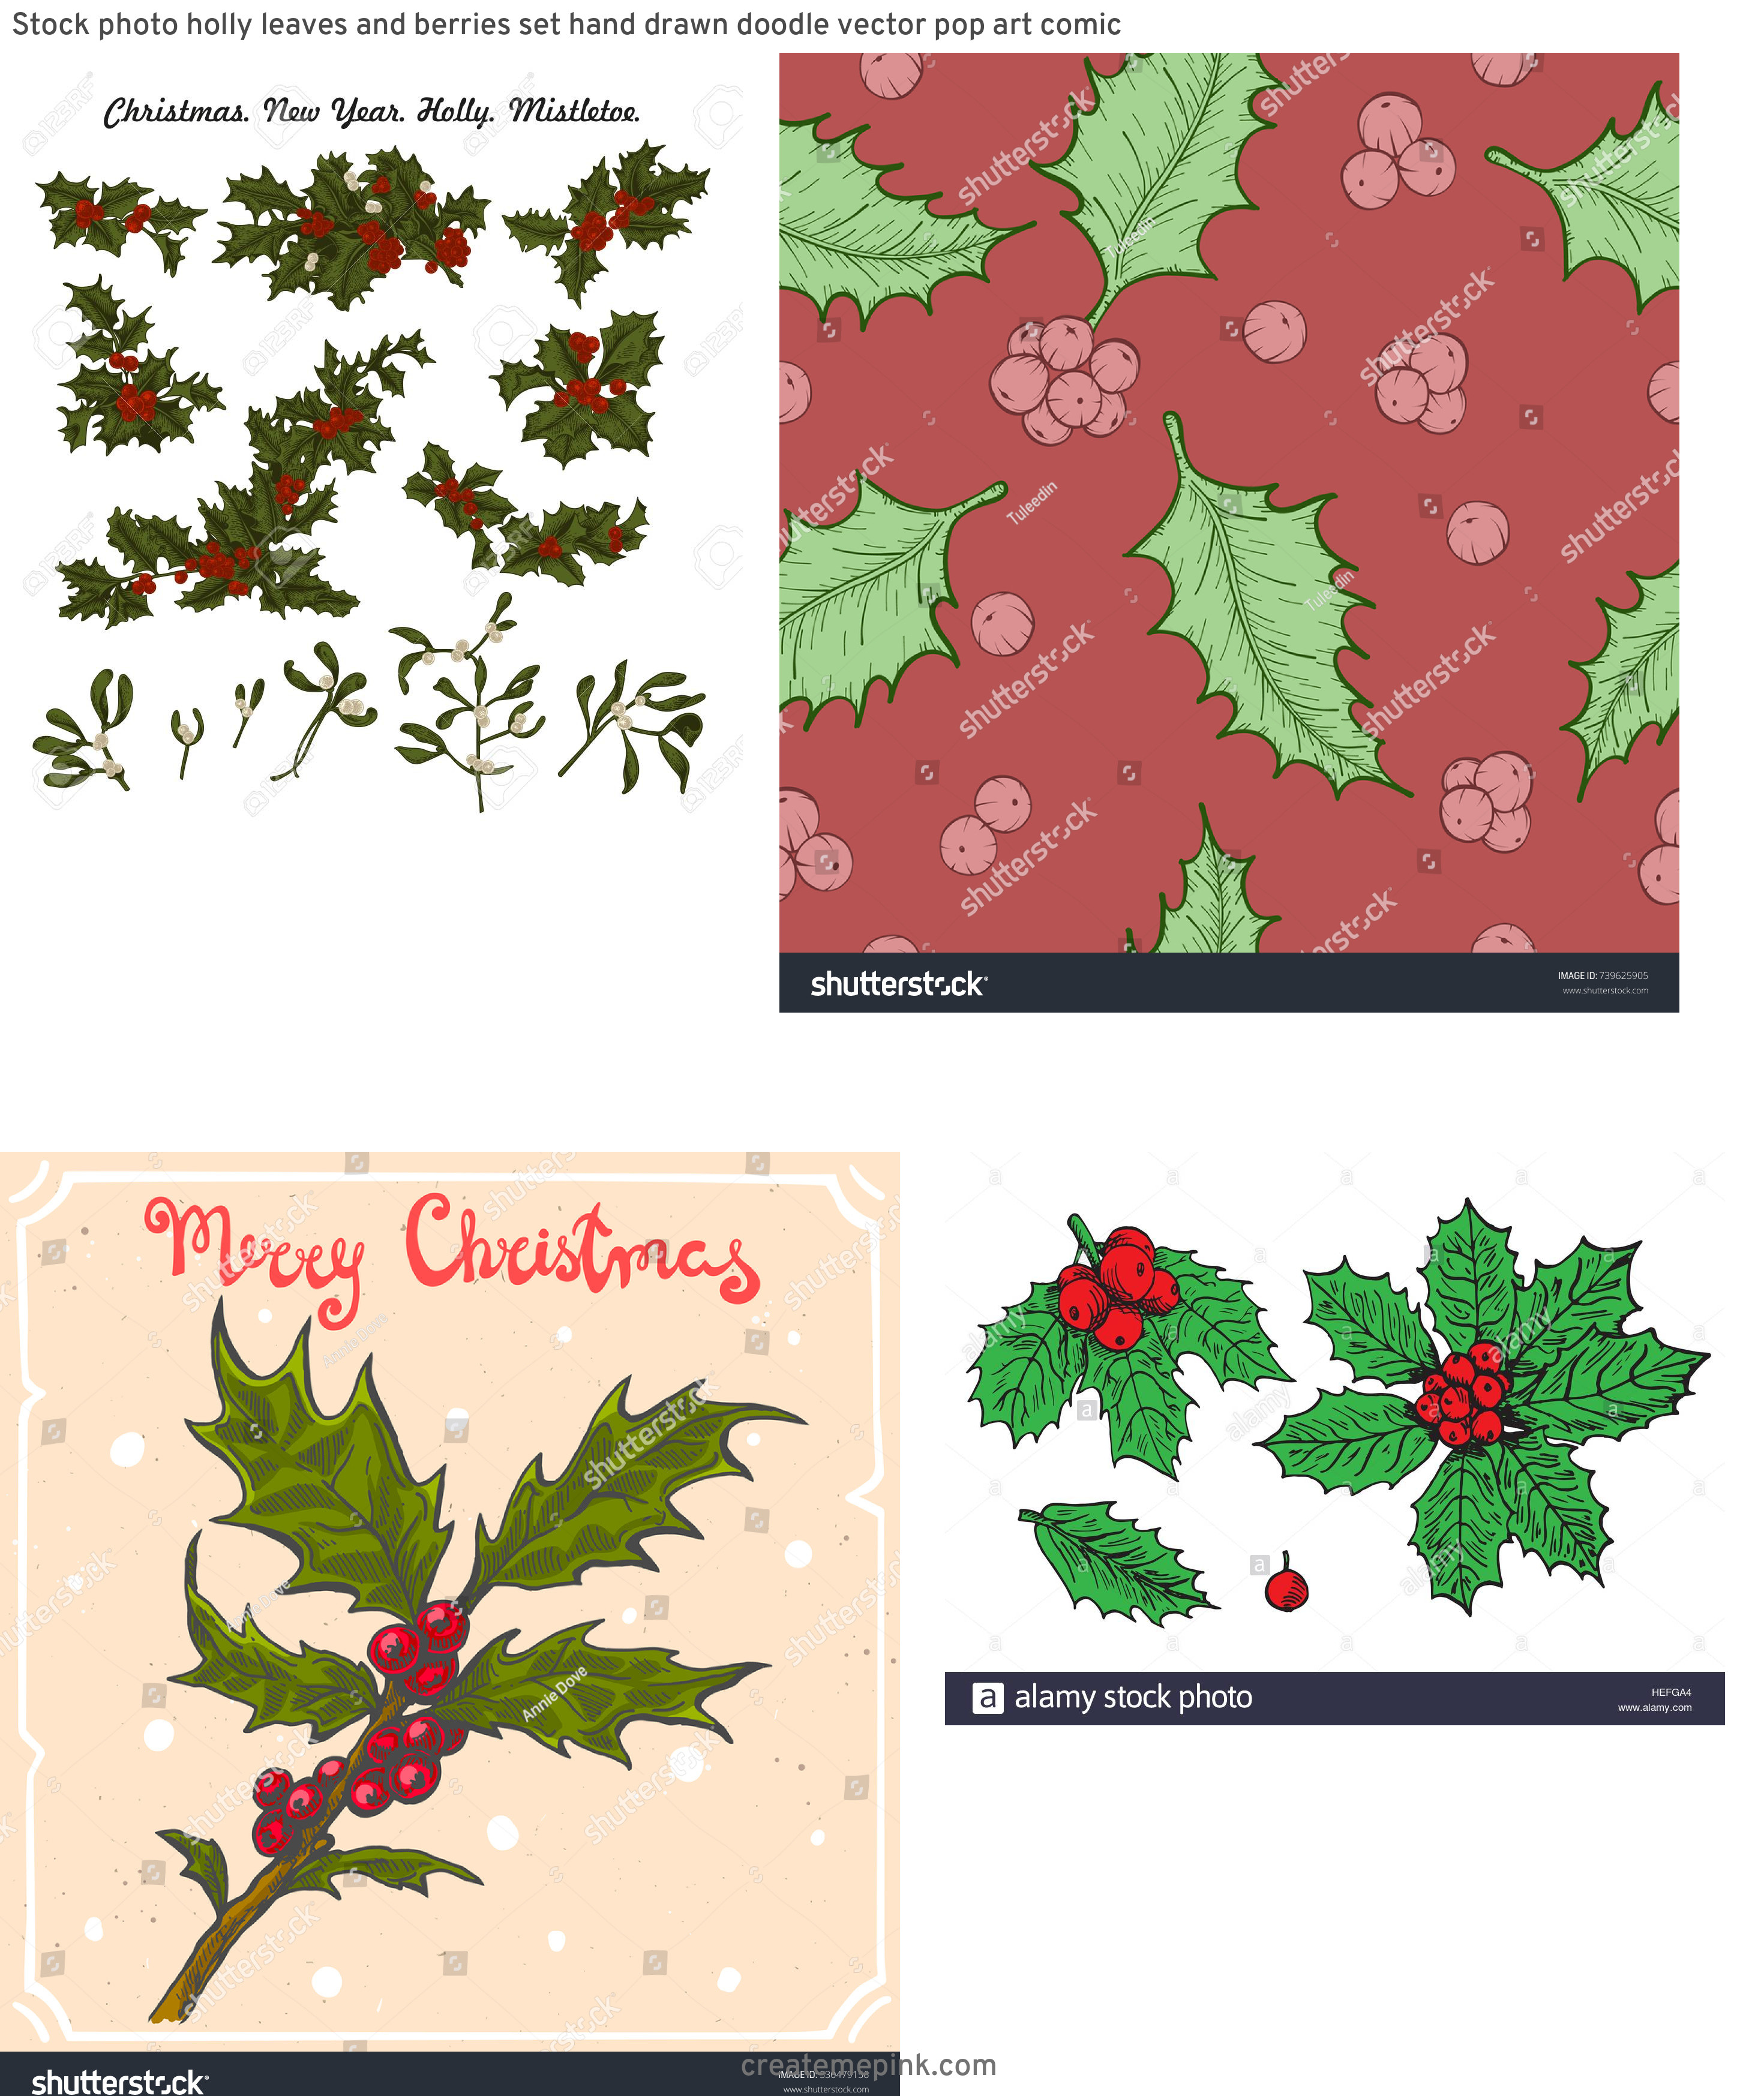 Vintage Look Holly Leaves Vector: Stock Photo Holly Leaves And Berries Set Hand Drawn Doodle Vector Pop Art Comic